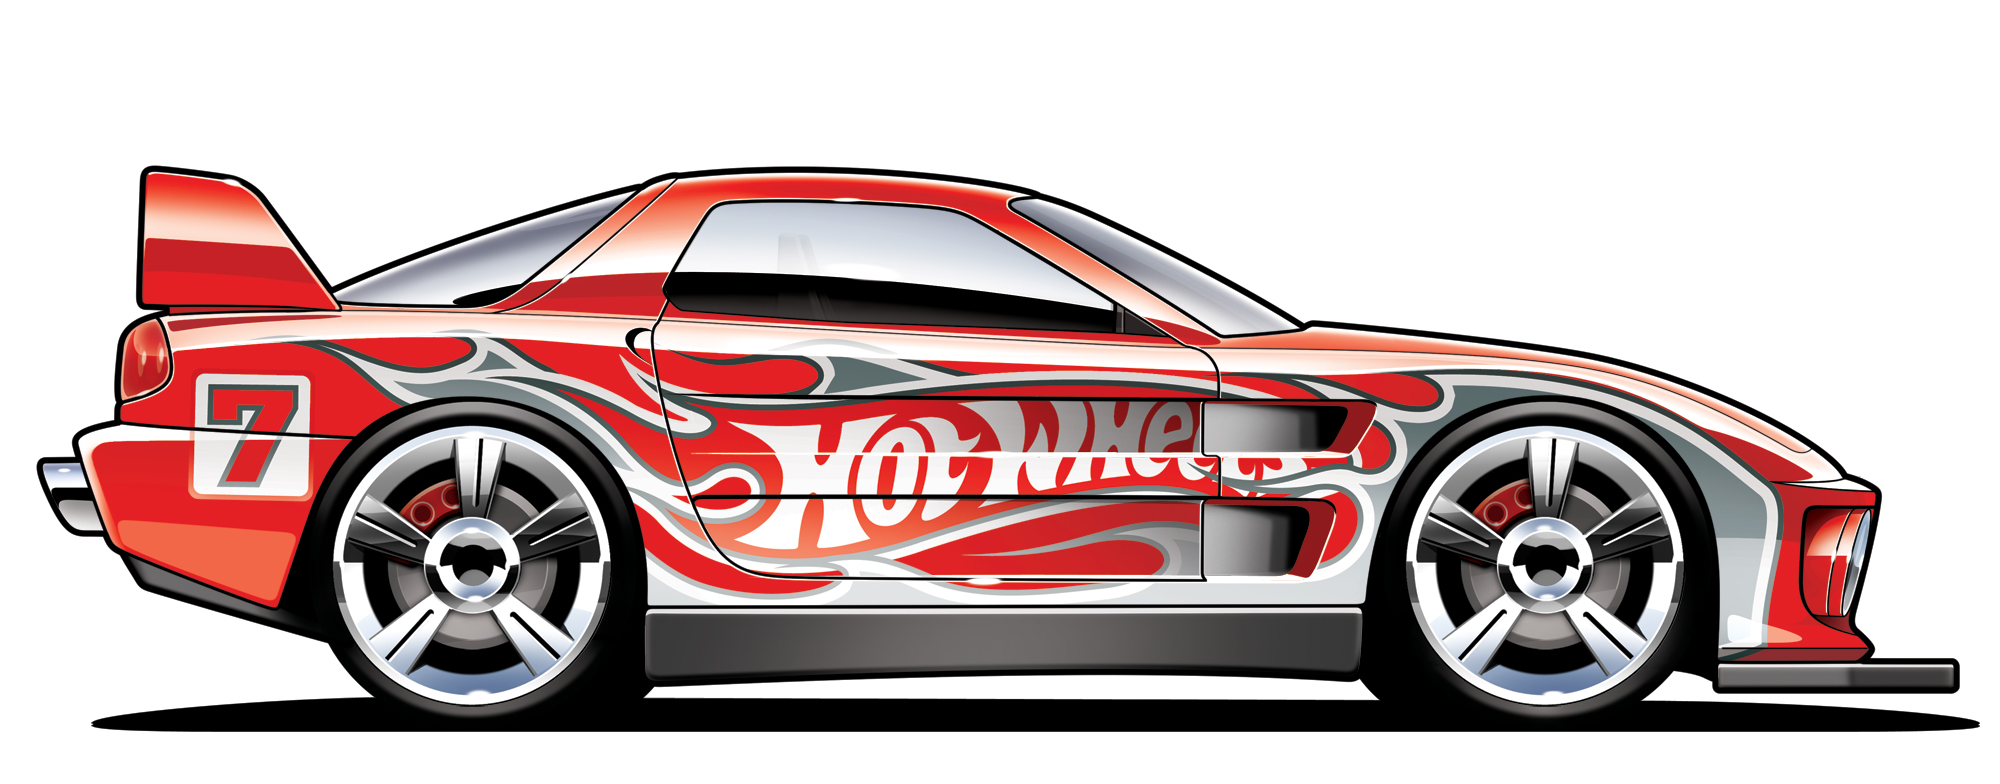 2000x784 Hot Wheels Clipart G - Hot Wheels Clipart